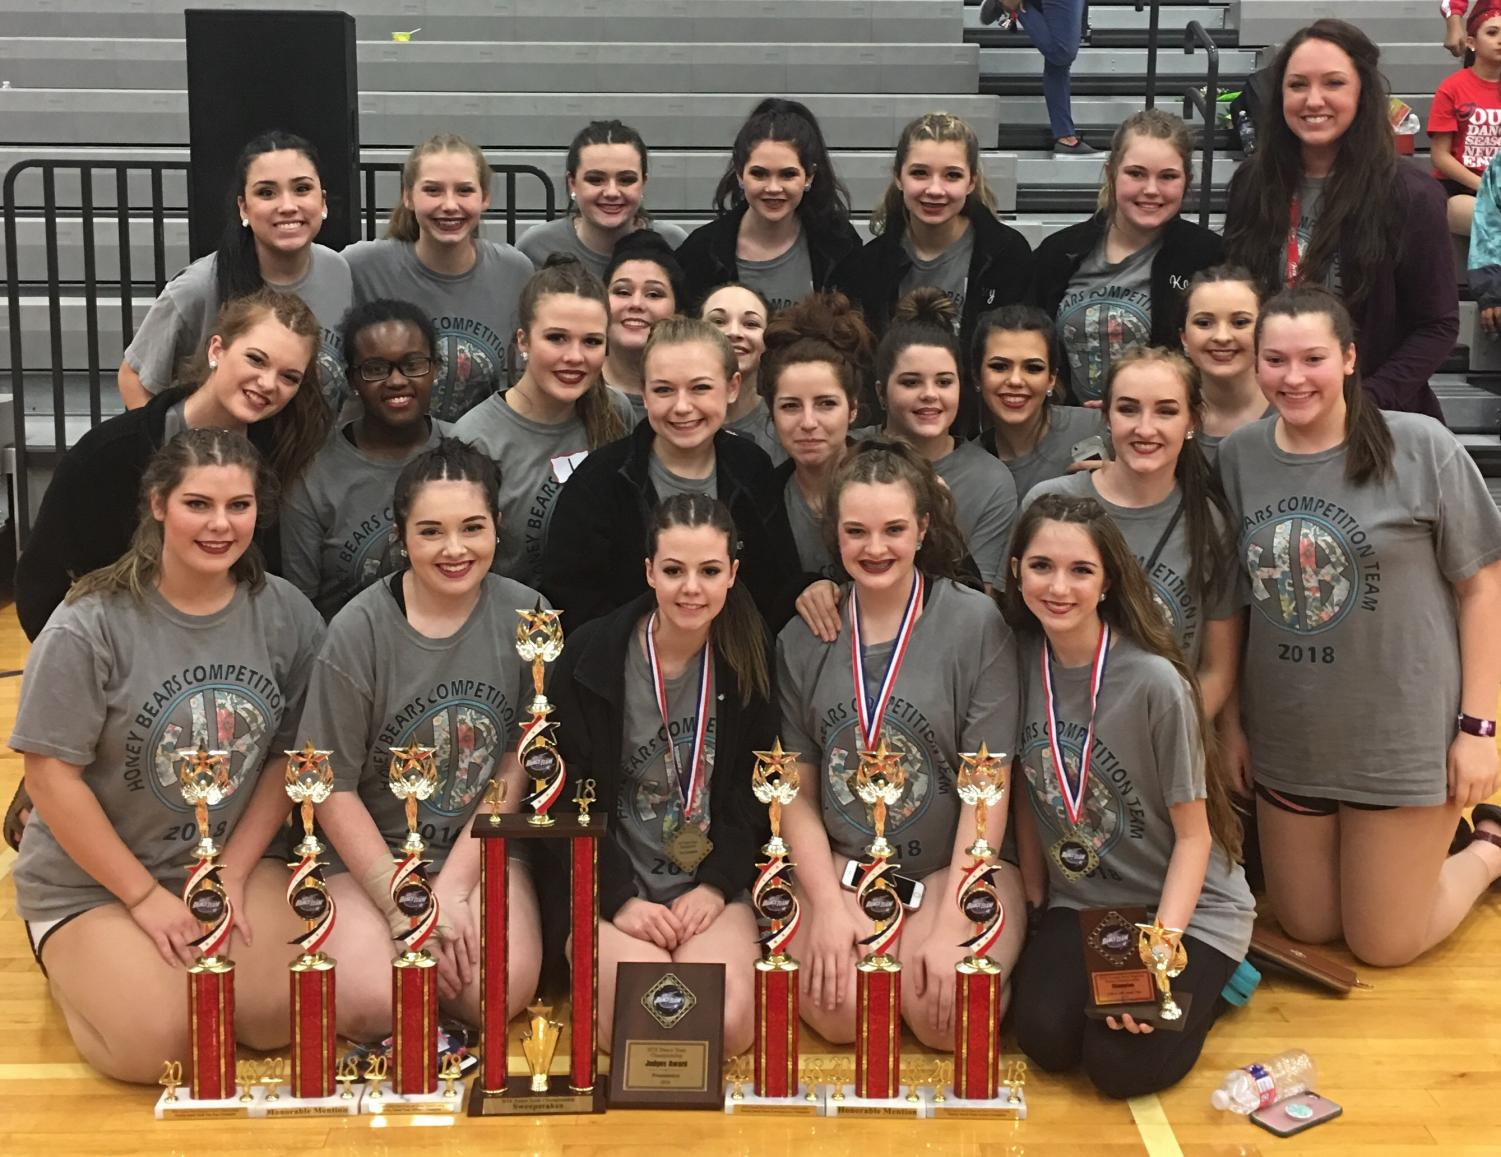 The Honey Bears competed in the Coastal Dance Championship at Goose Creek Memorial High School.